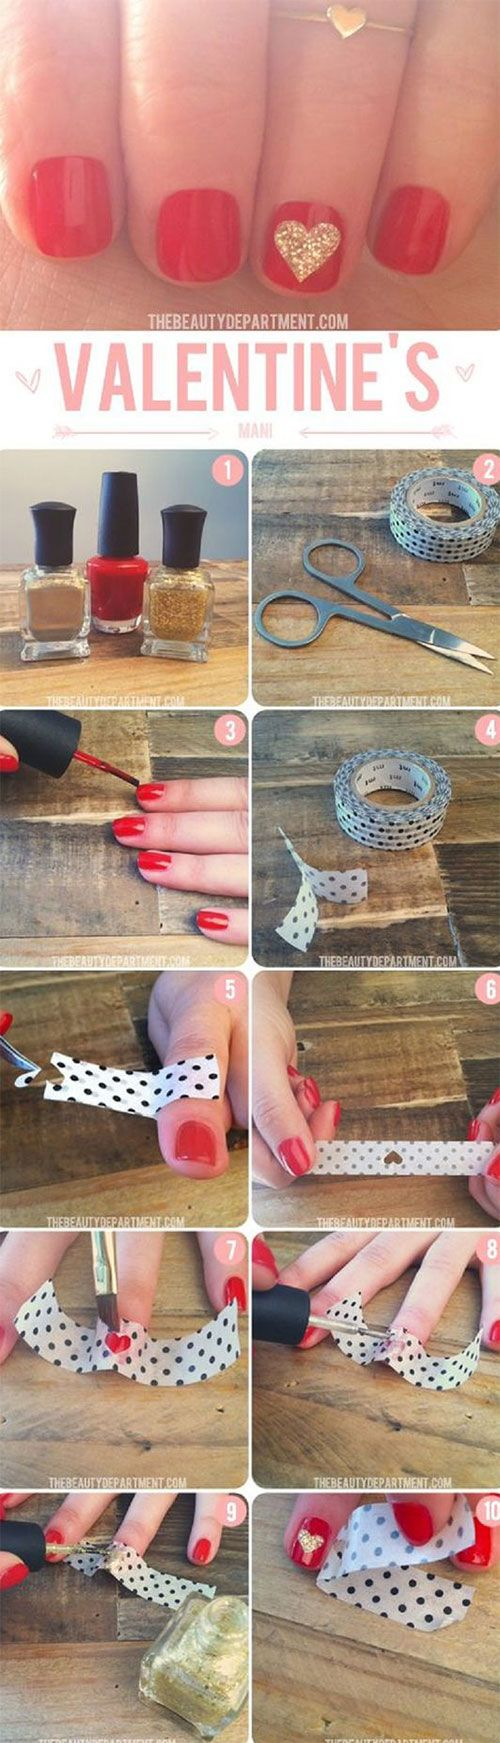 36 Amazing Manicure Hacks You Should Know | Life changing, Manicure ...